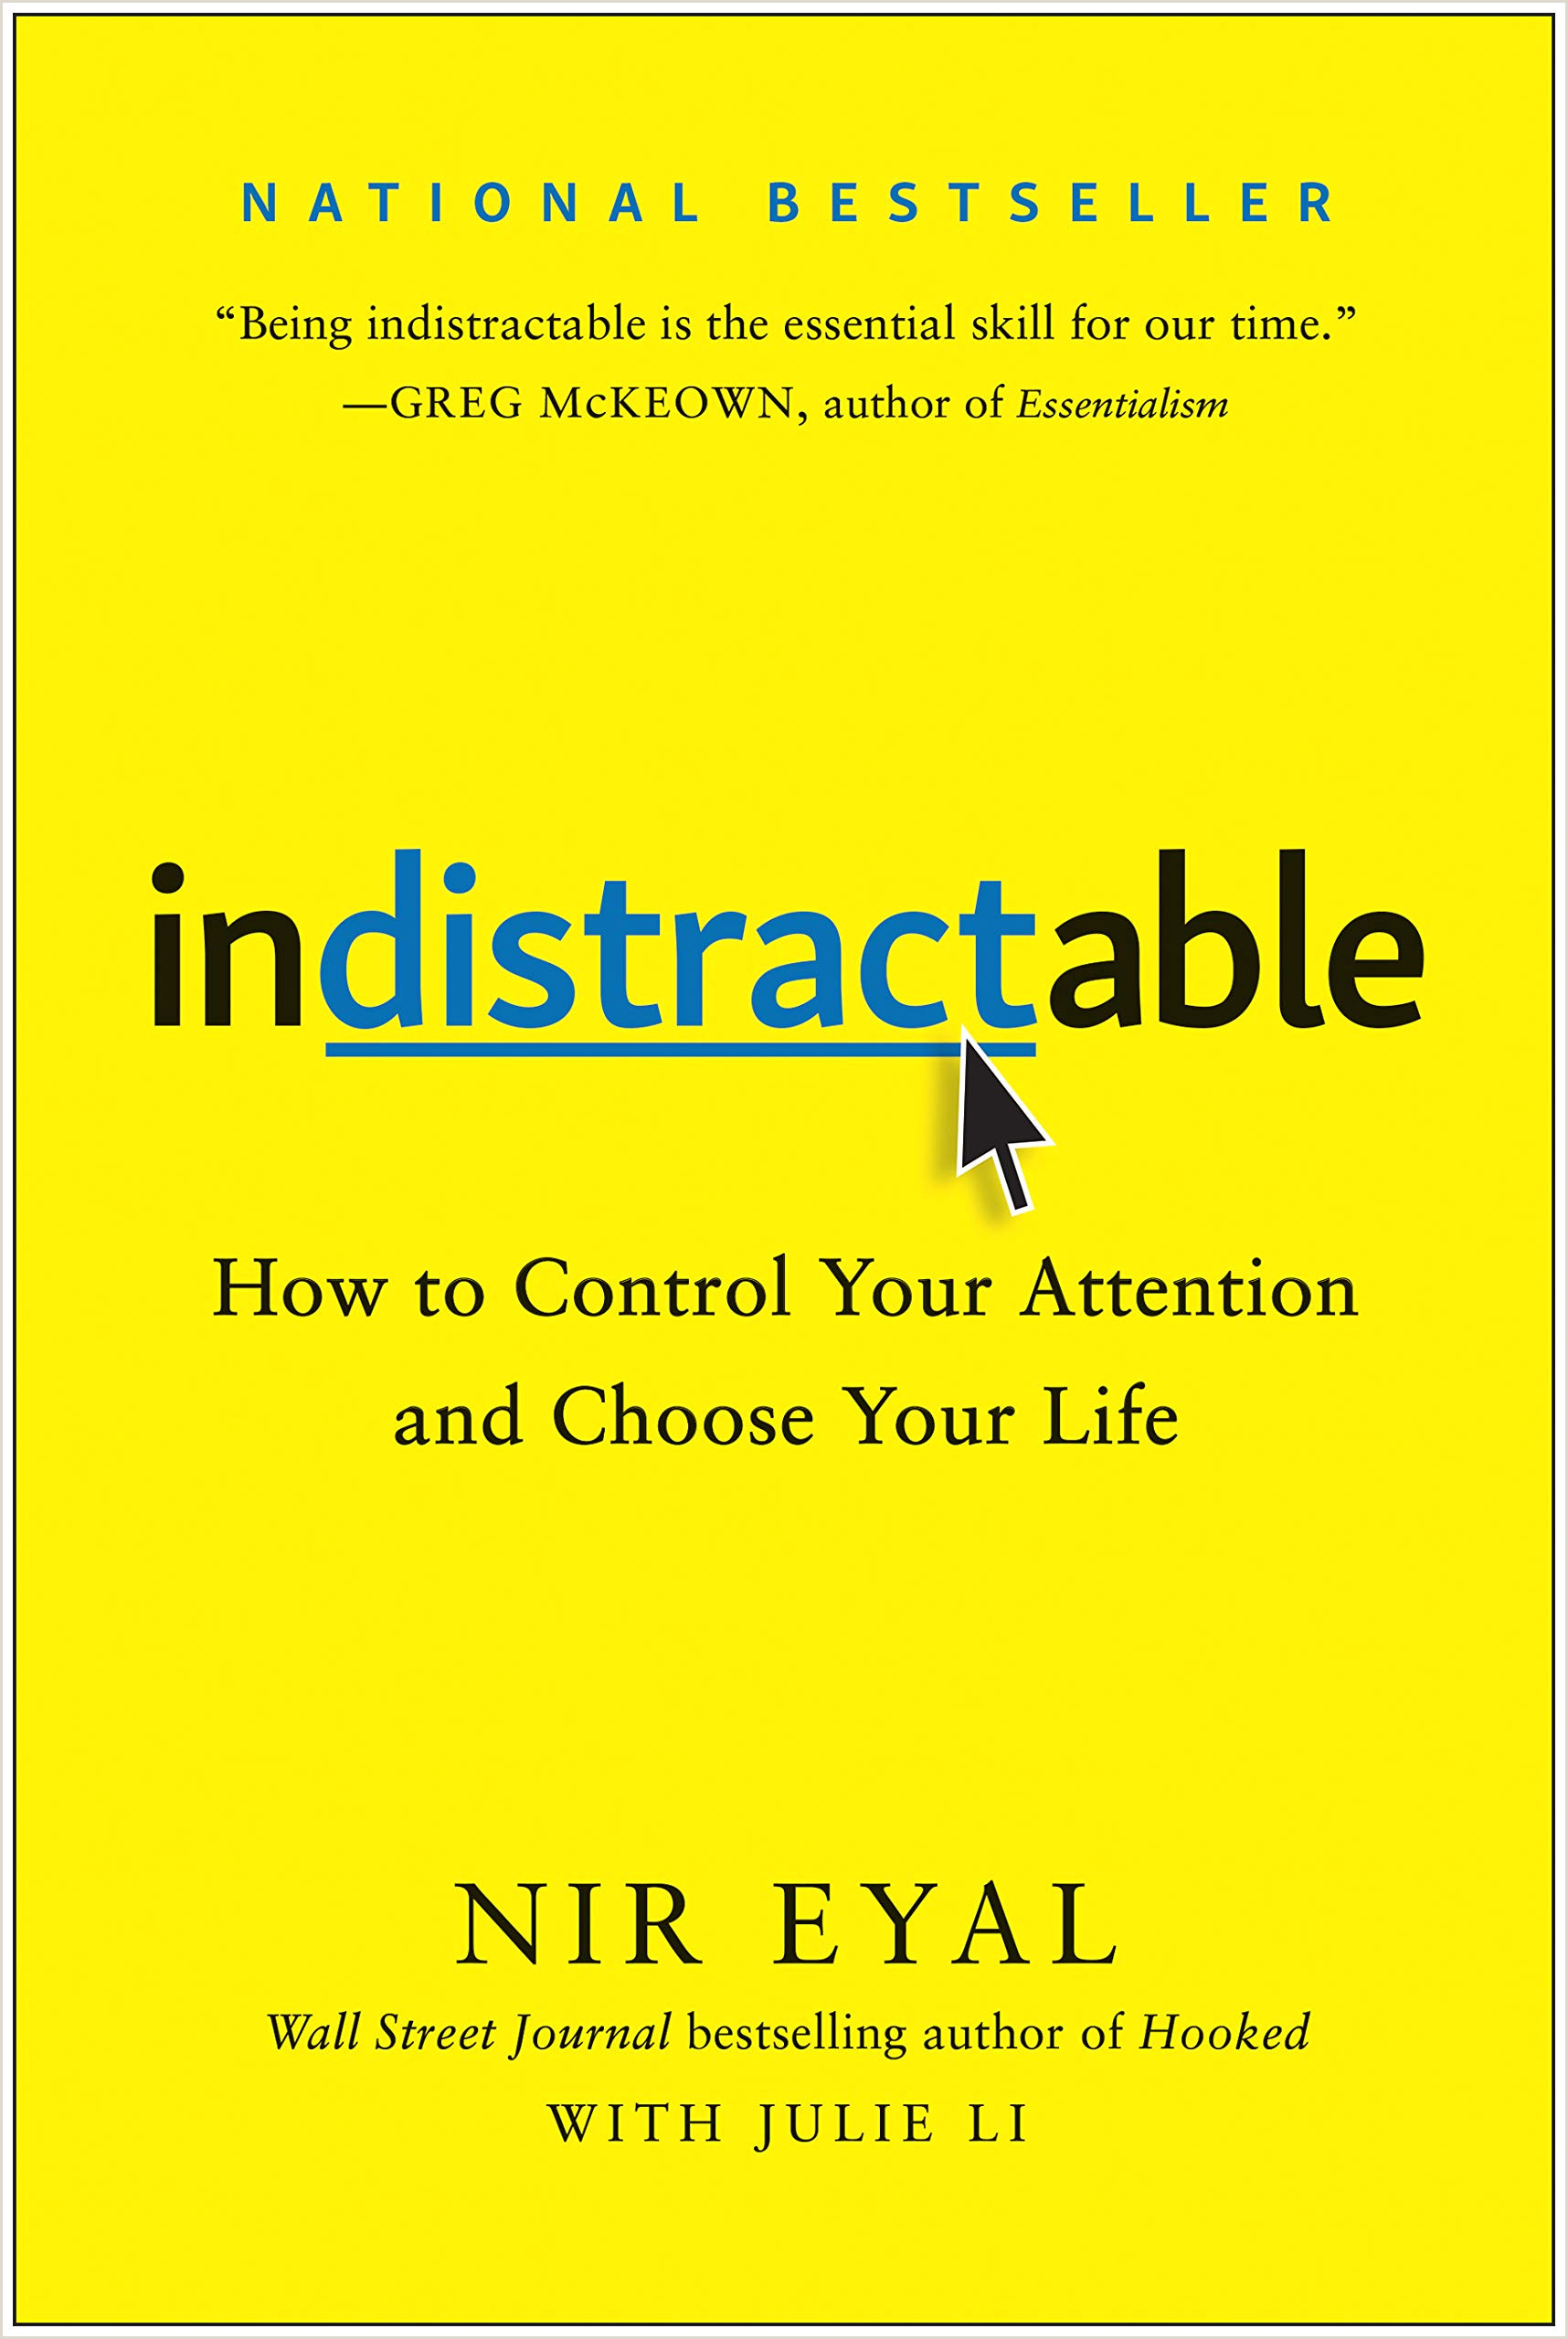 Best Business Cards Writer Indistractable How To Control Your Attention And Choose